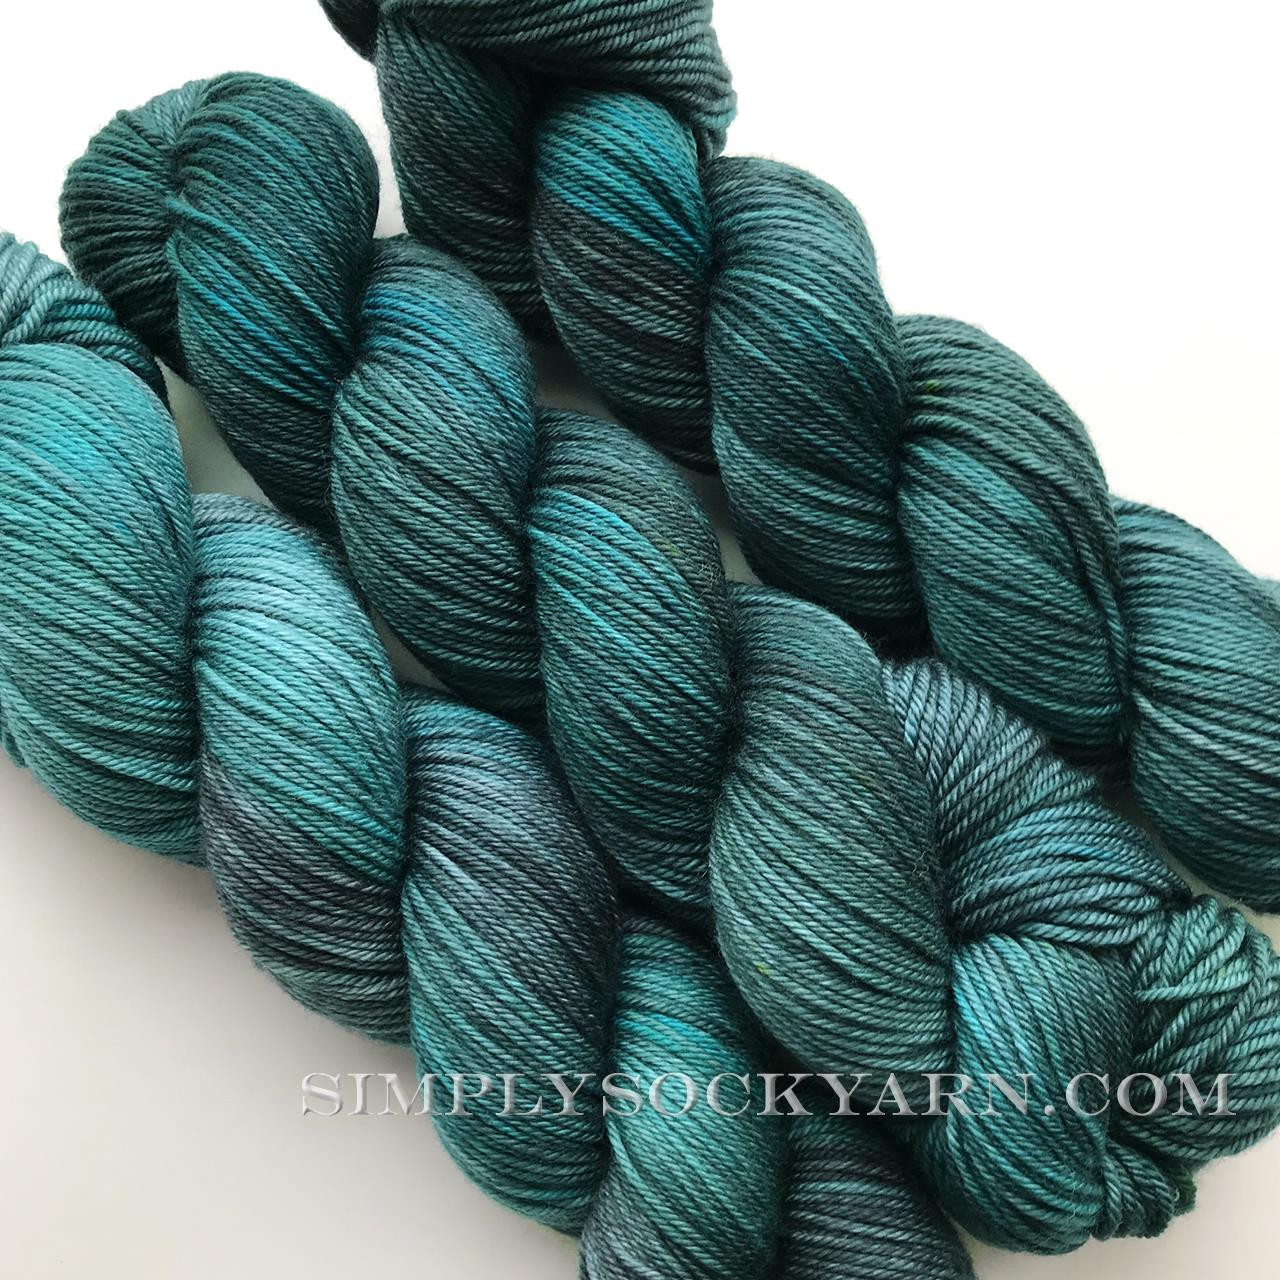 SRR Squish DK The Big Teal Wave -